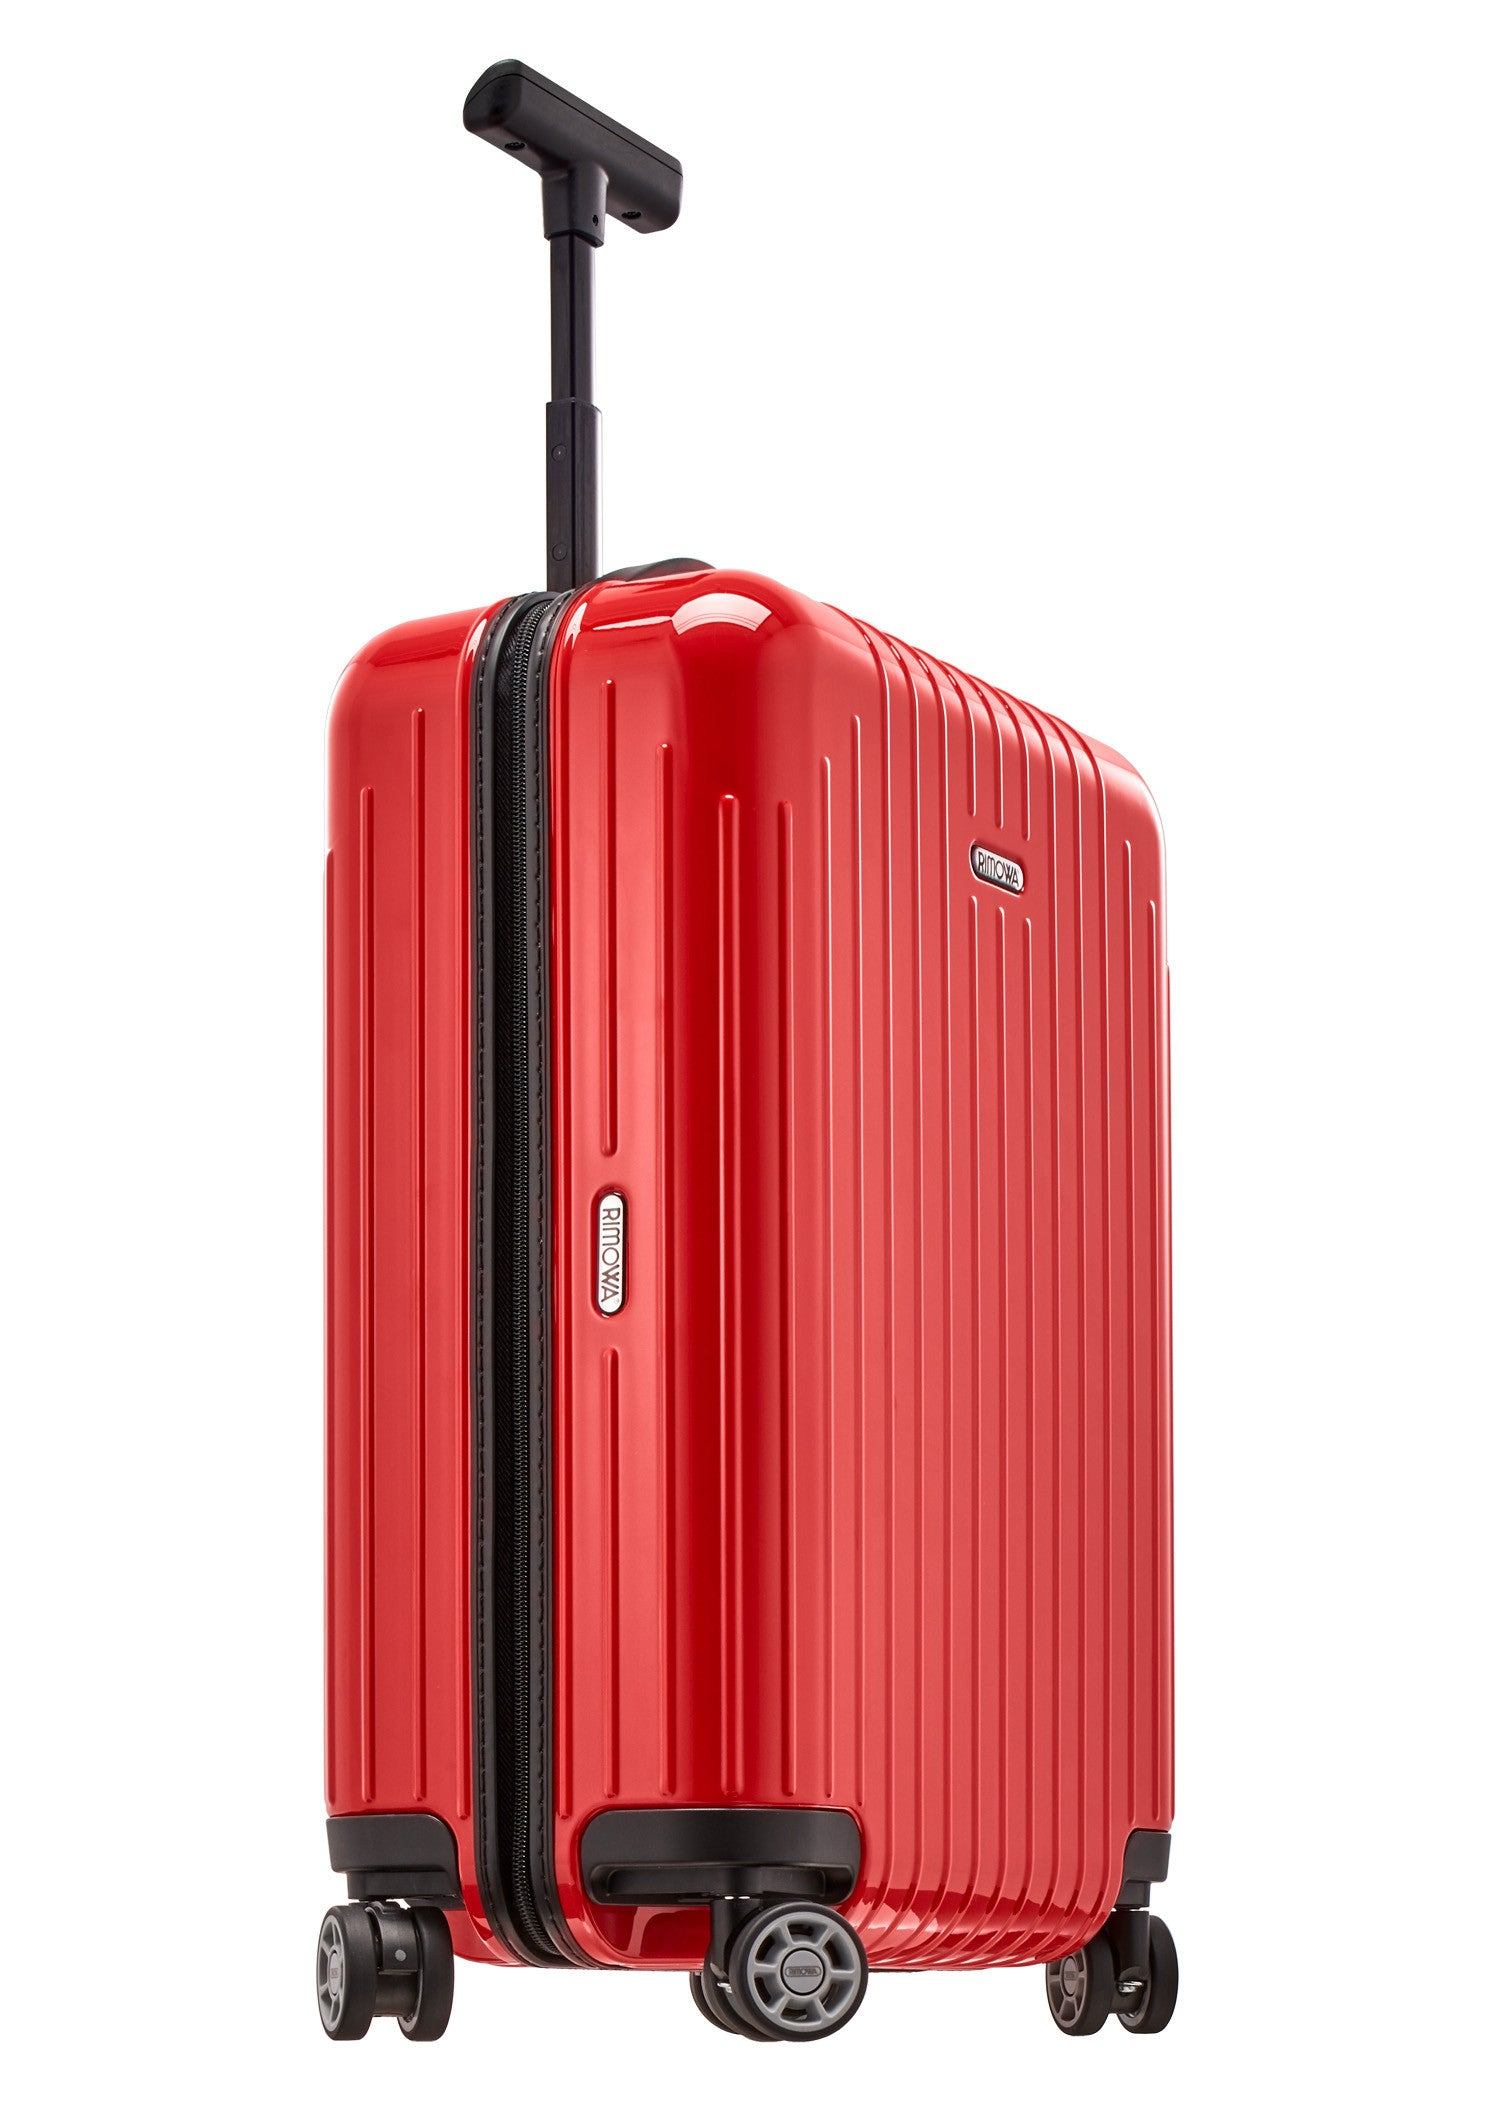 "Rimowa Salsa Air Ultralight Cabin 22"" (52) Multiwheel IATA 33.0L - Guards Red 